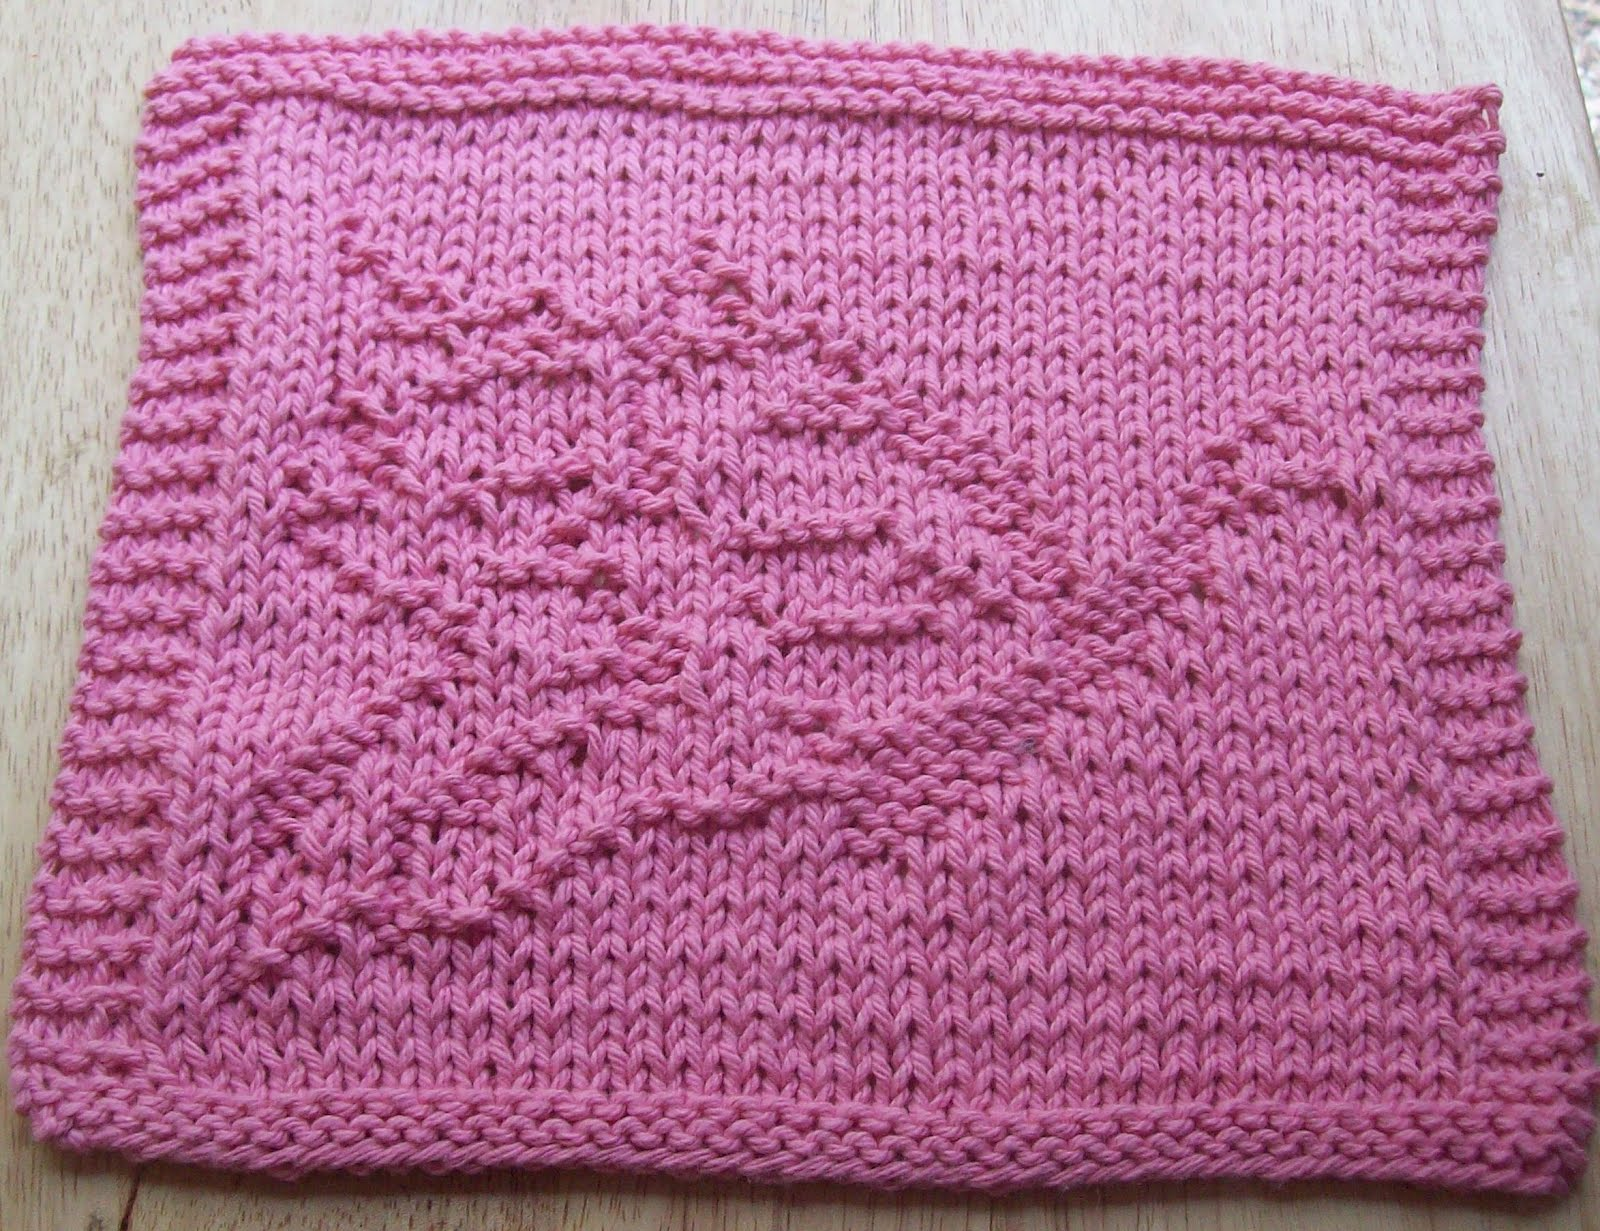 Knitting Pattern Butterfly : Digknitty designs another butterfly knit dishcloth pattern